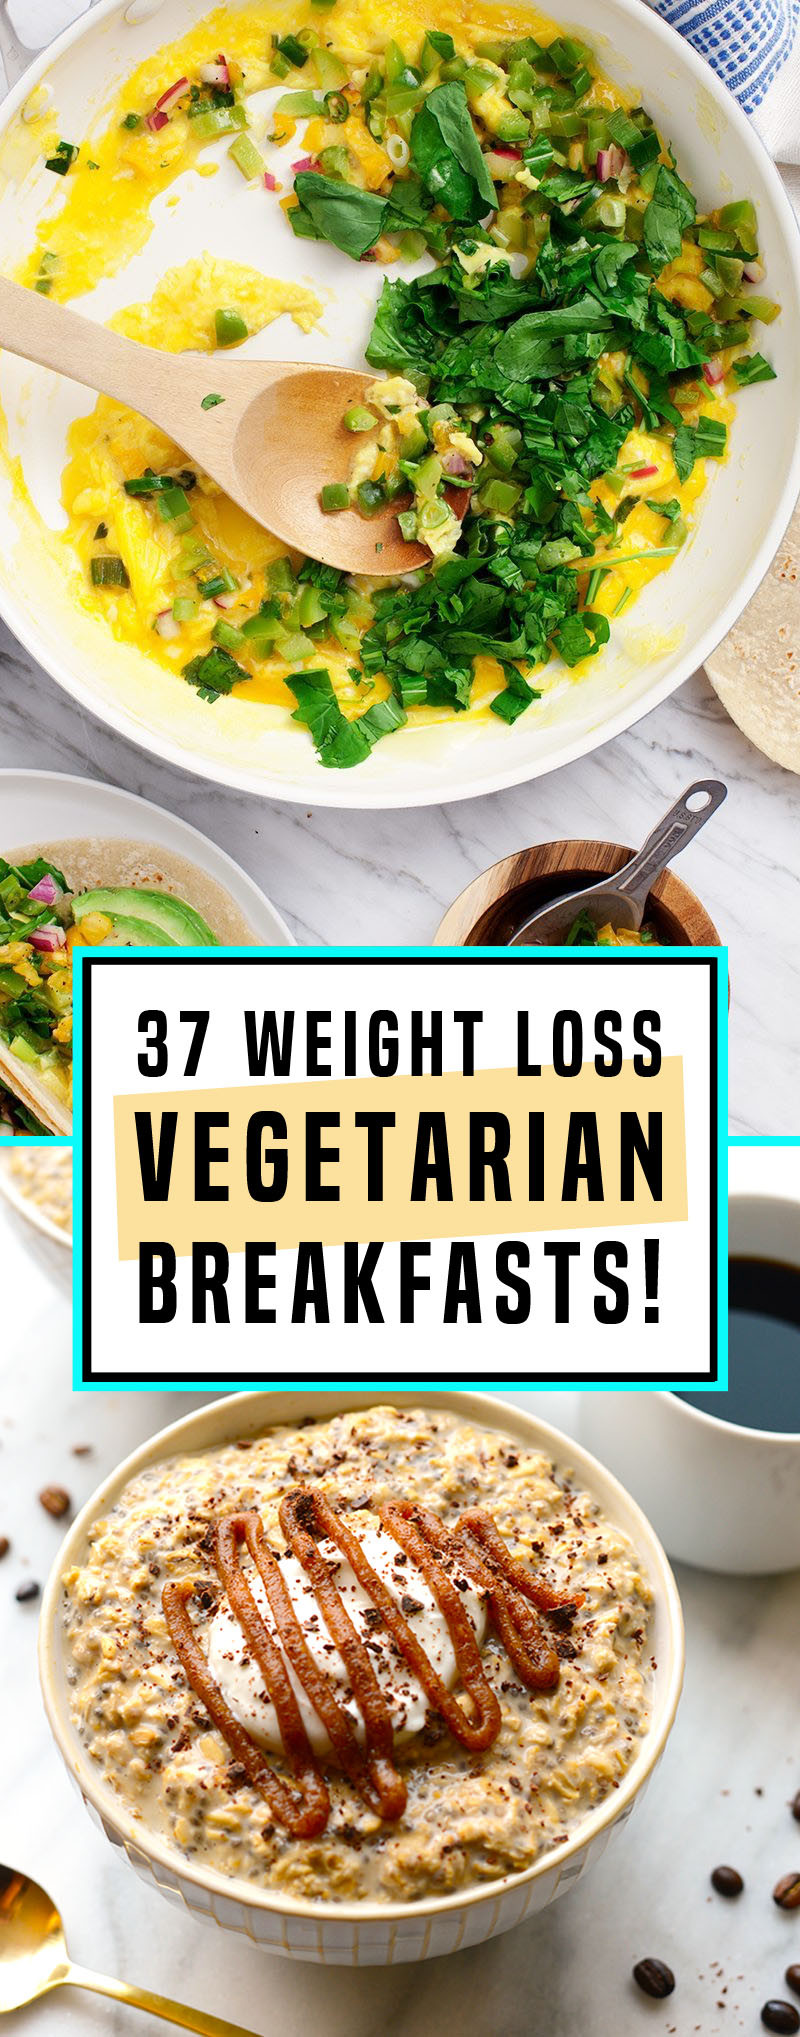 Vegetarian Breakfast Recipes For Weight Loss  37 Ve arian Breakfasts For The Perfect Weight Loss Start